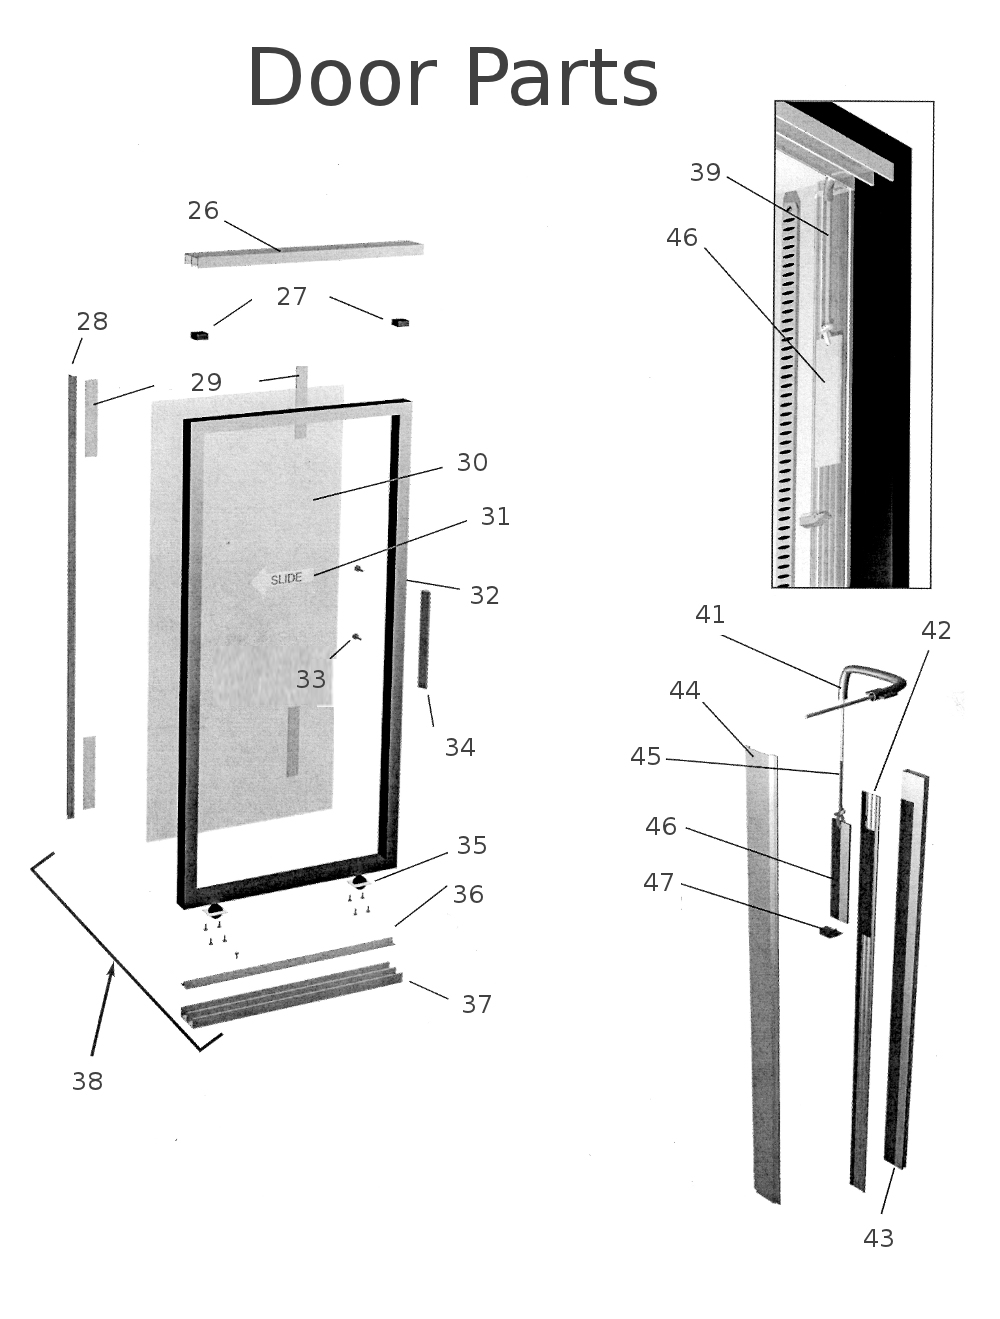 Parts Of A Door : True repair parts for glass door merchandiser